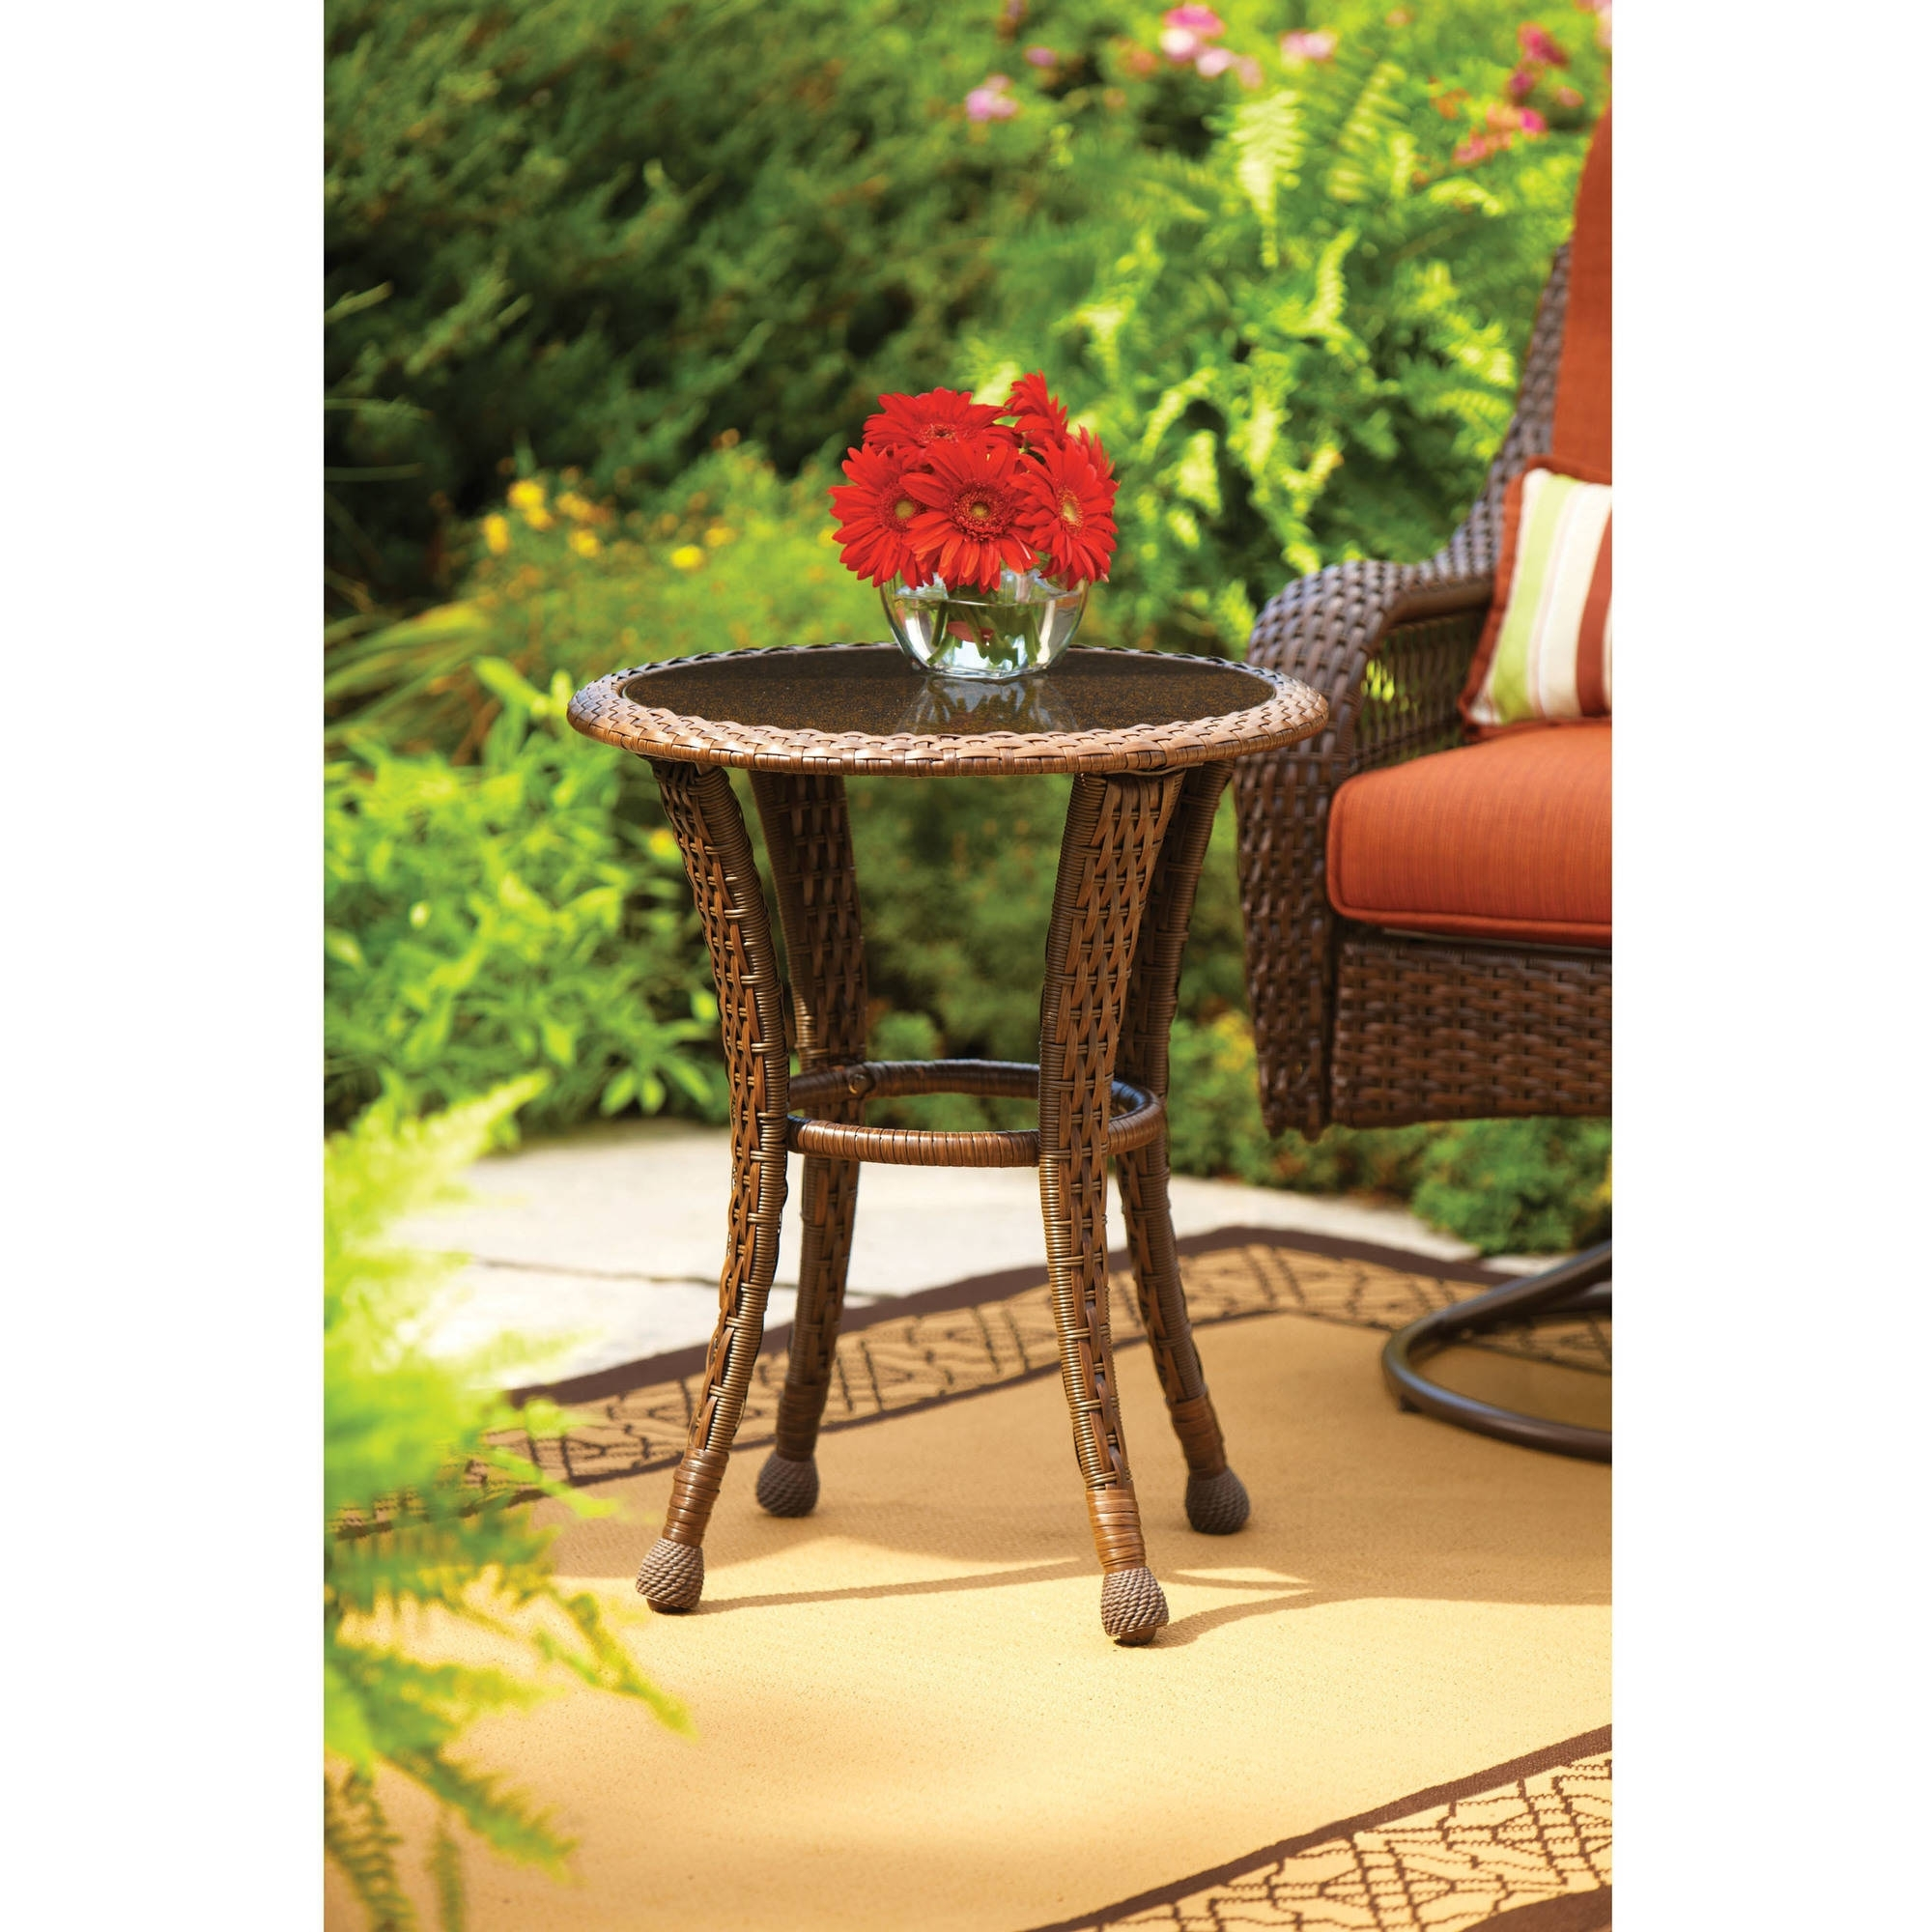 popular patio umbrellas with accent table better homes and gardens azalea ridge round outdoor side regarding widely used umbrella all wood sofa velvet furniture home goods chairs